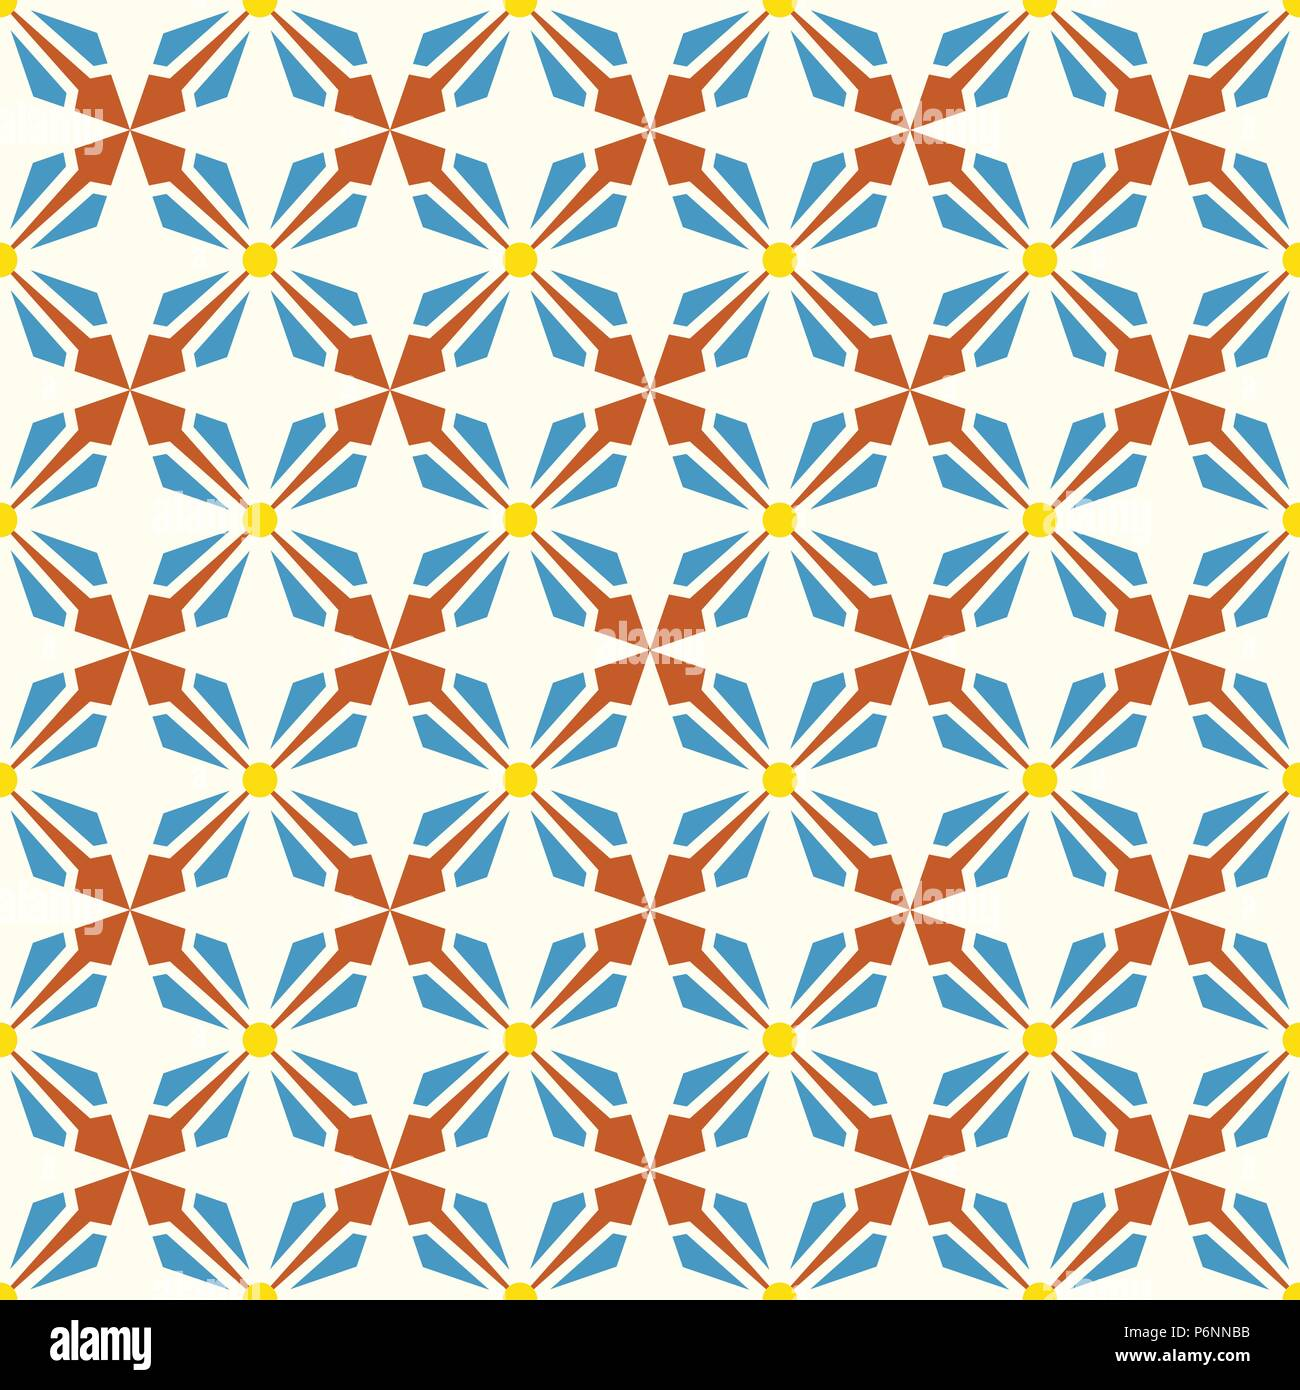 Orange and blue abstract arrow and circle in rectangle shape seamless pattern. Modern pattern for graphic or abstract design. - Stock Vector